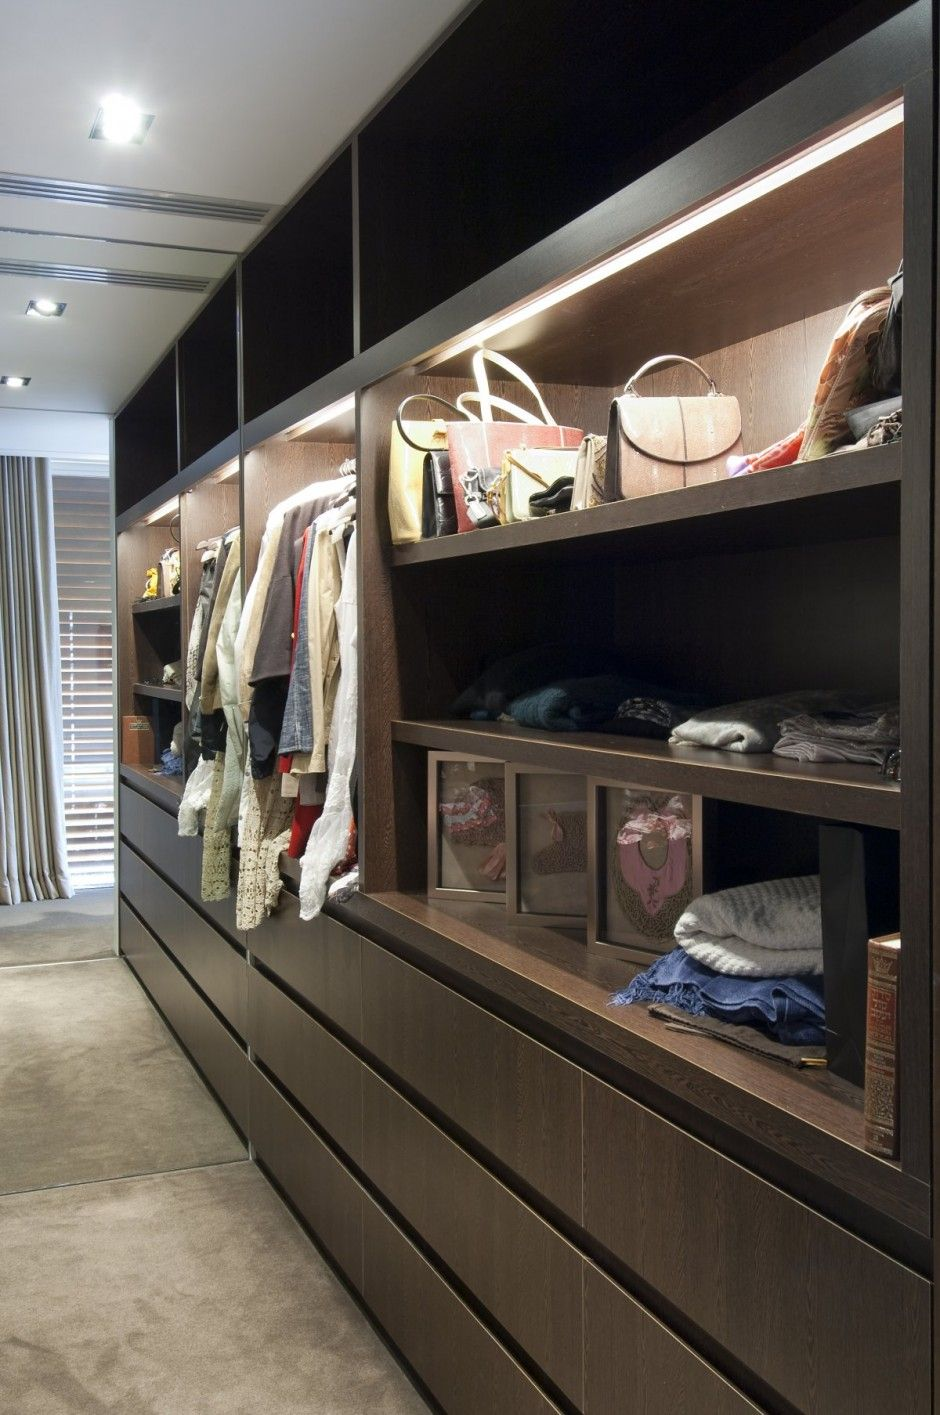 wardrobe lighting ideas. Recessed Channel Lighting Niches Work Beautifully In A Contemporary Closet Design. Wardrobe Ideas L